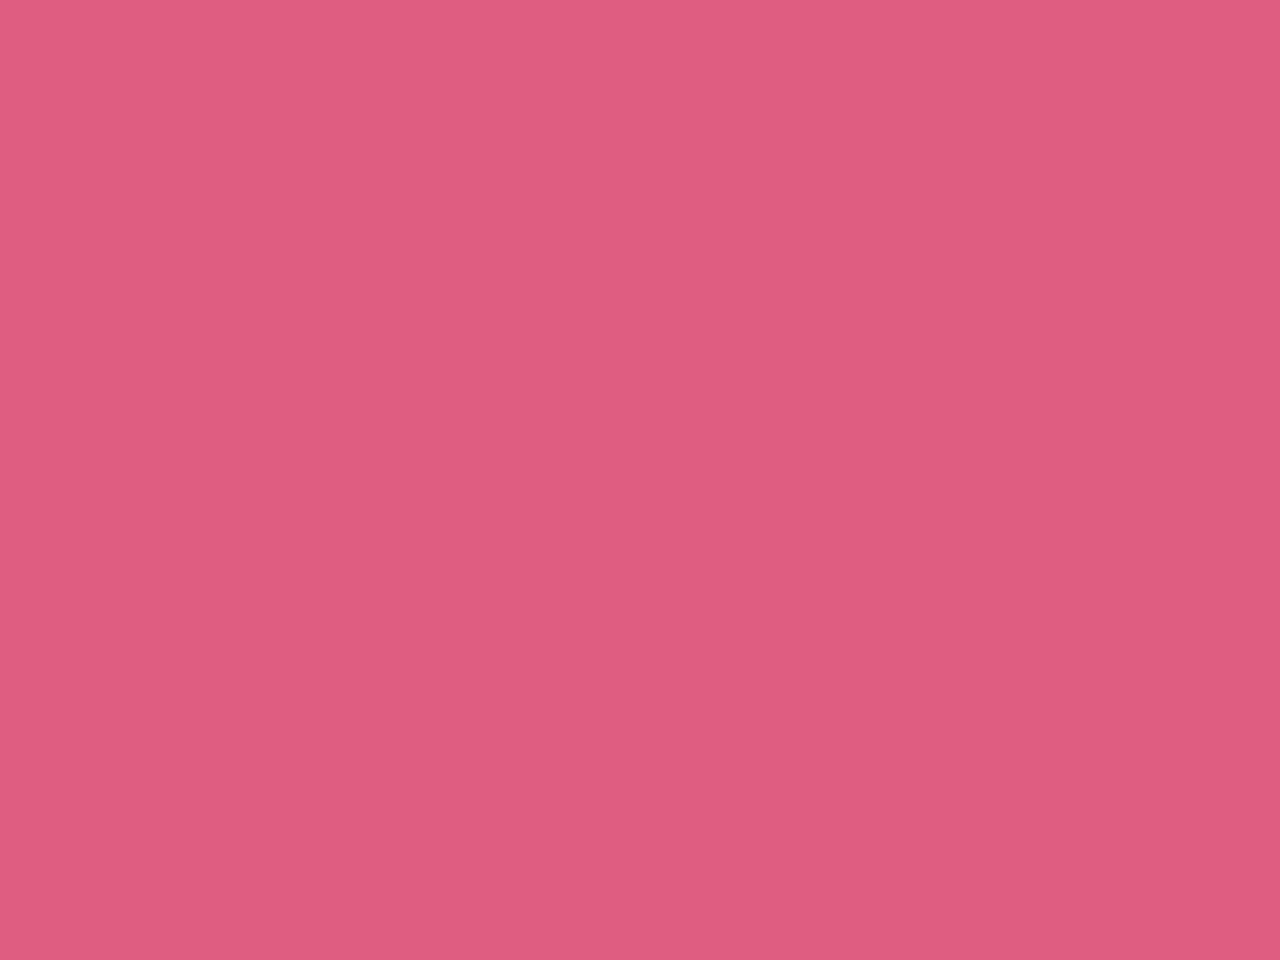 1280x960 Blush Solid Color Background